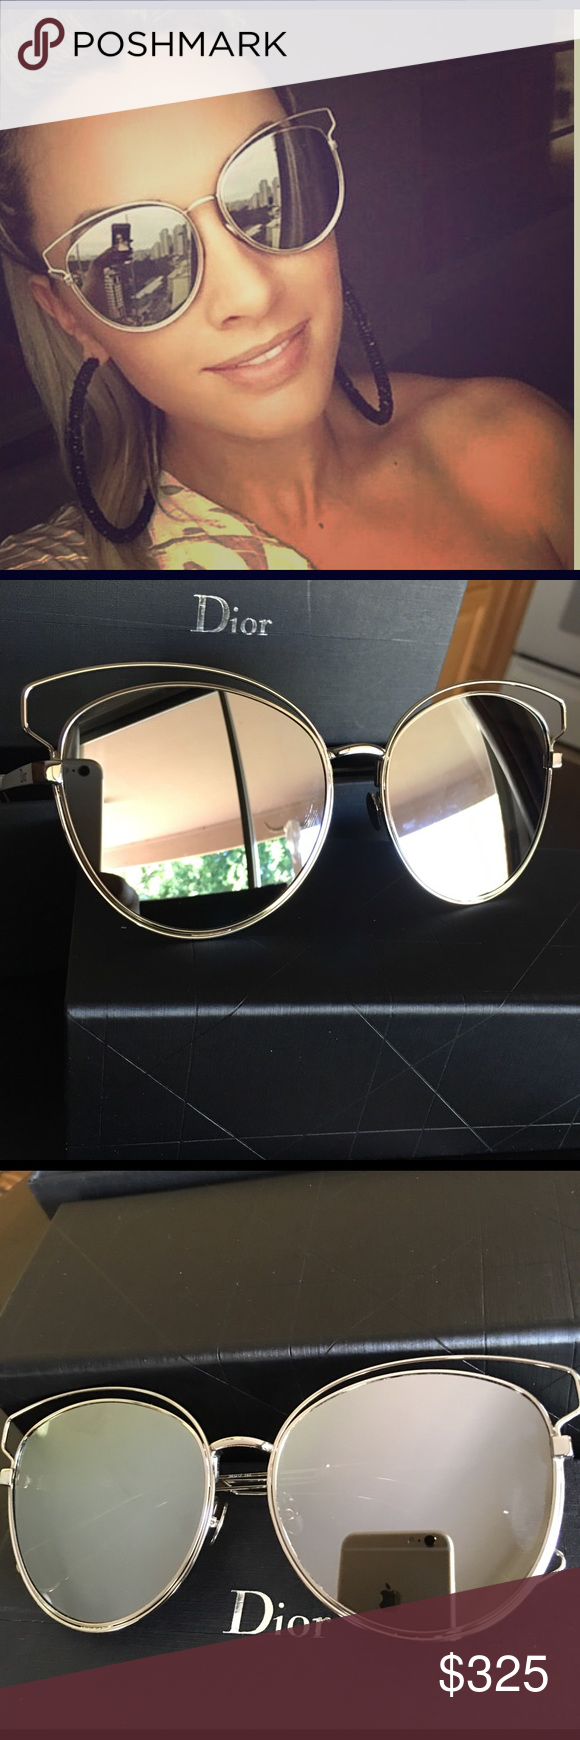 501e1ced3f9 Christian Dior Sideral 2 sunglasses white  silver Brand new with all  accessories white and wire frame with silver shiny lenses comes with.